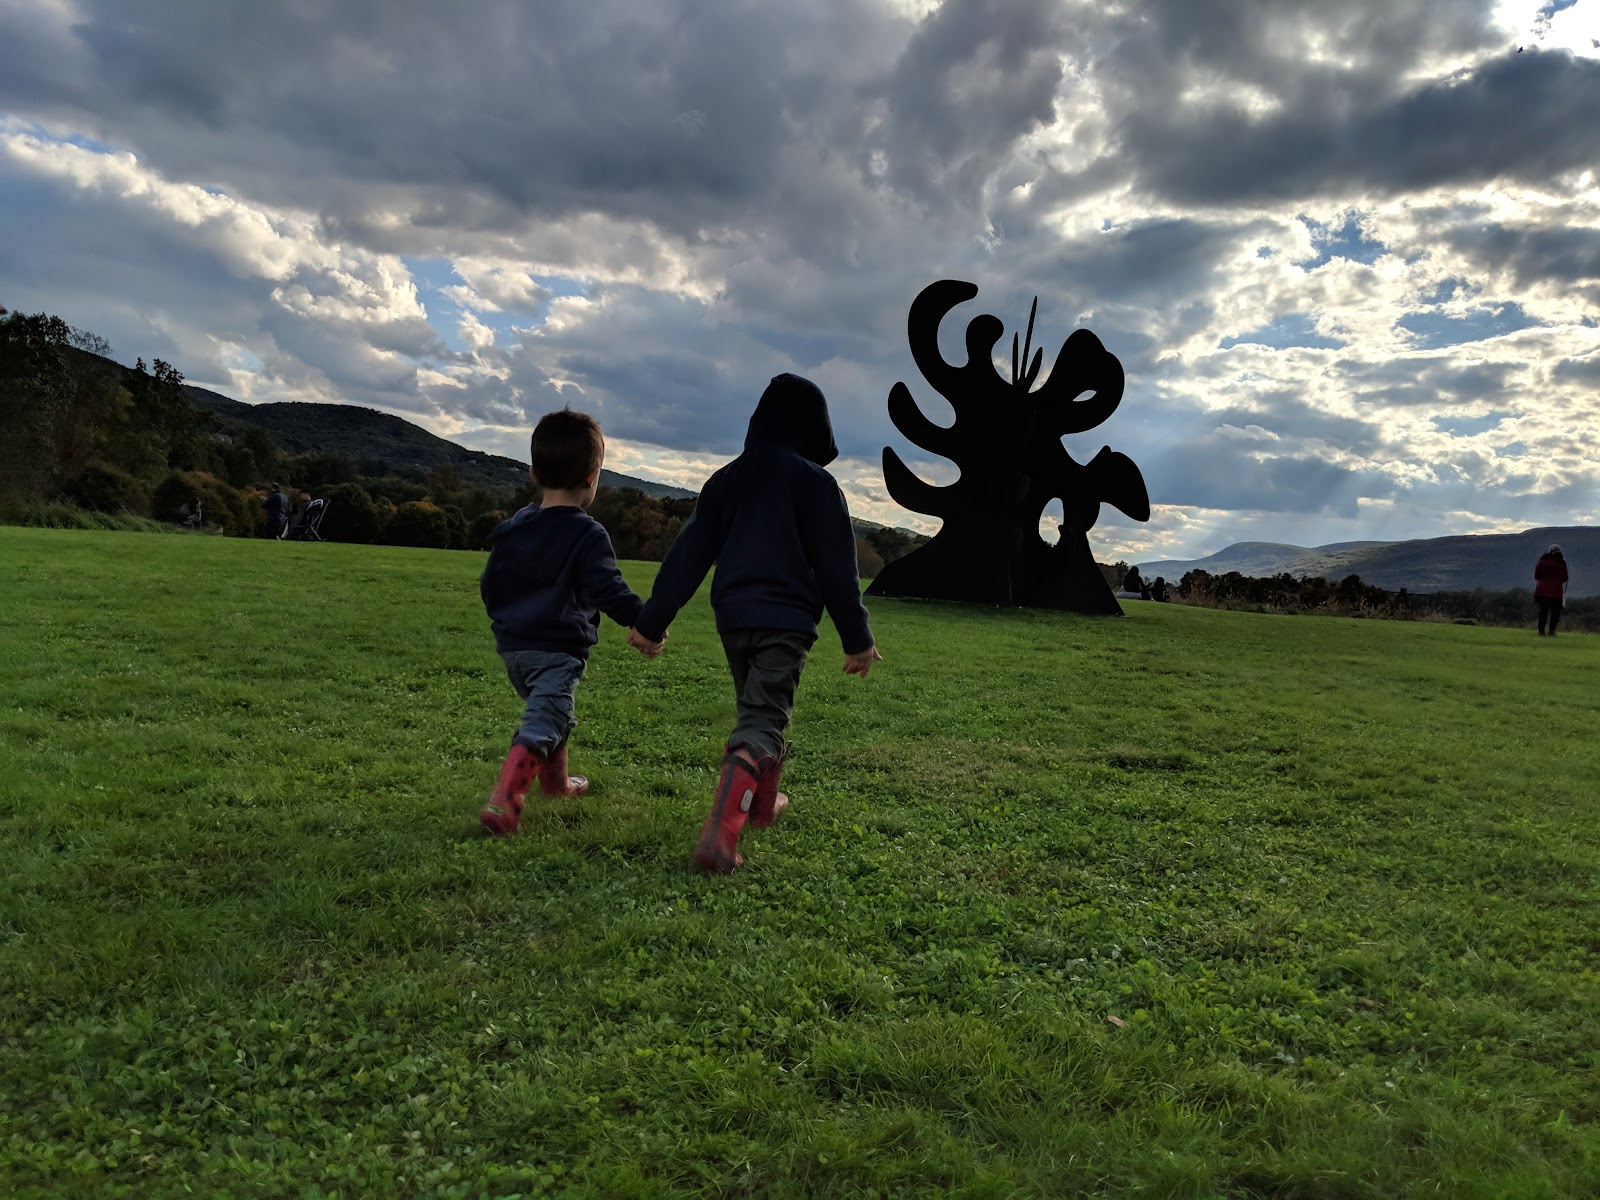 Storm King is a short drive from Dia:Beacon